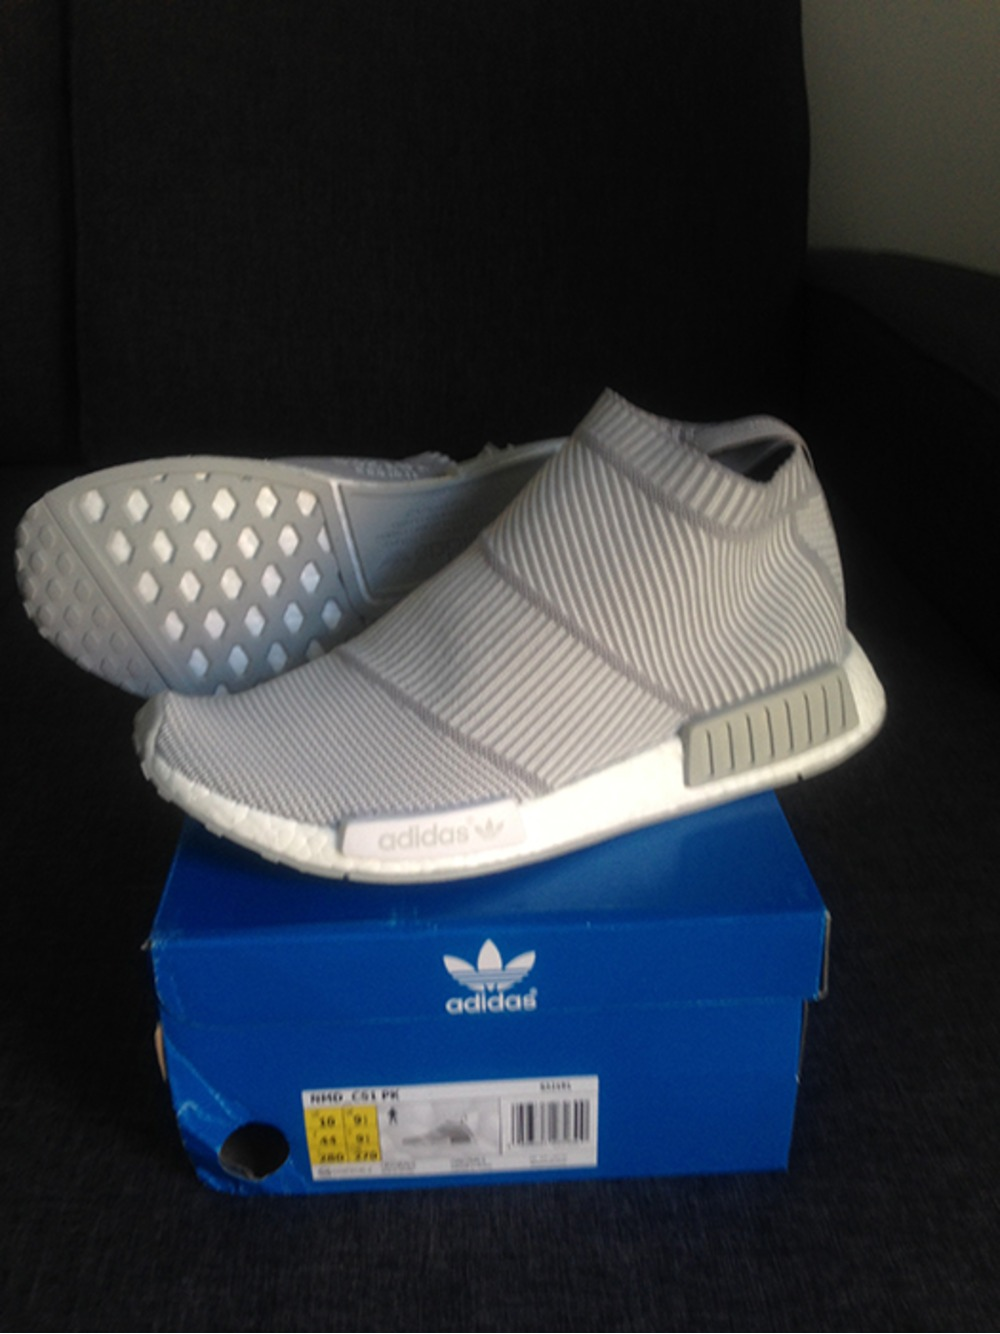 UNBOXING: ADIDAS NMD R1 TACTILE GREEN